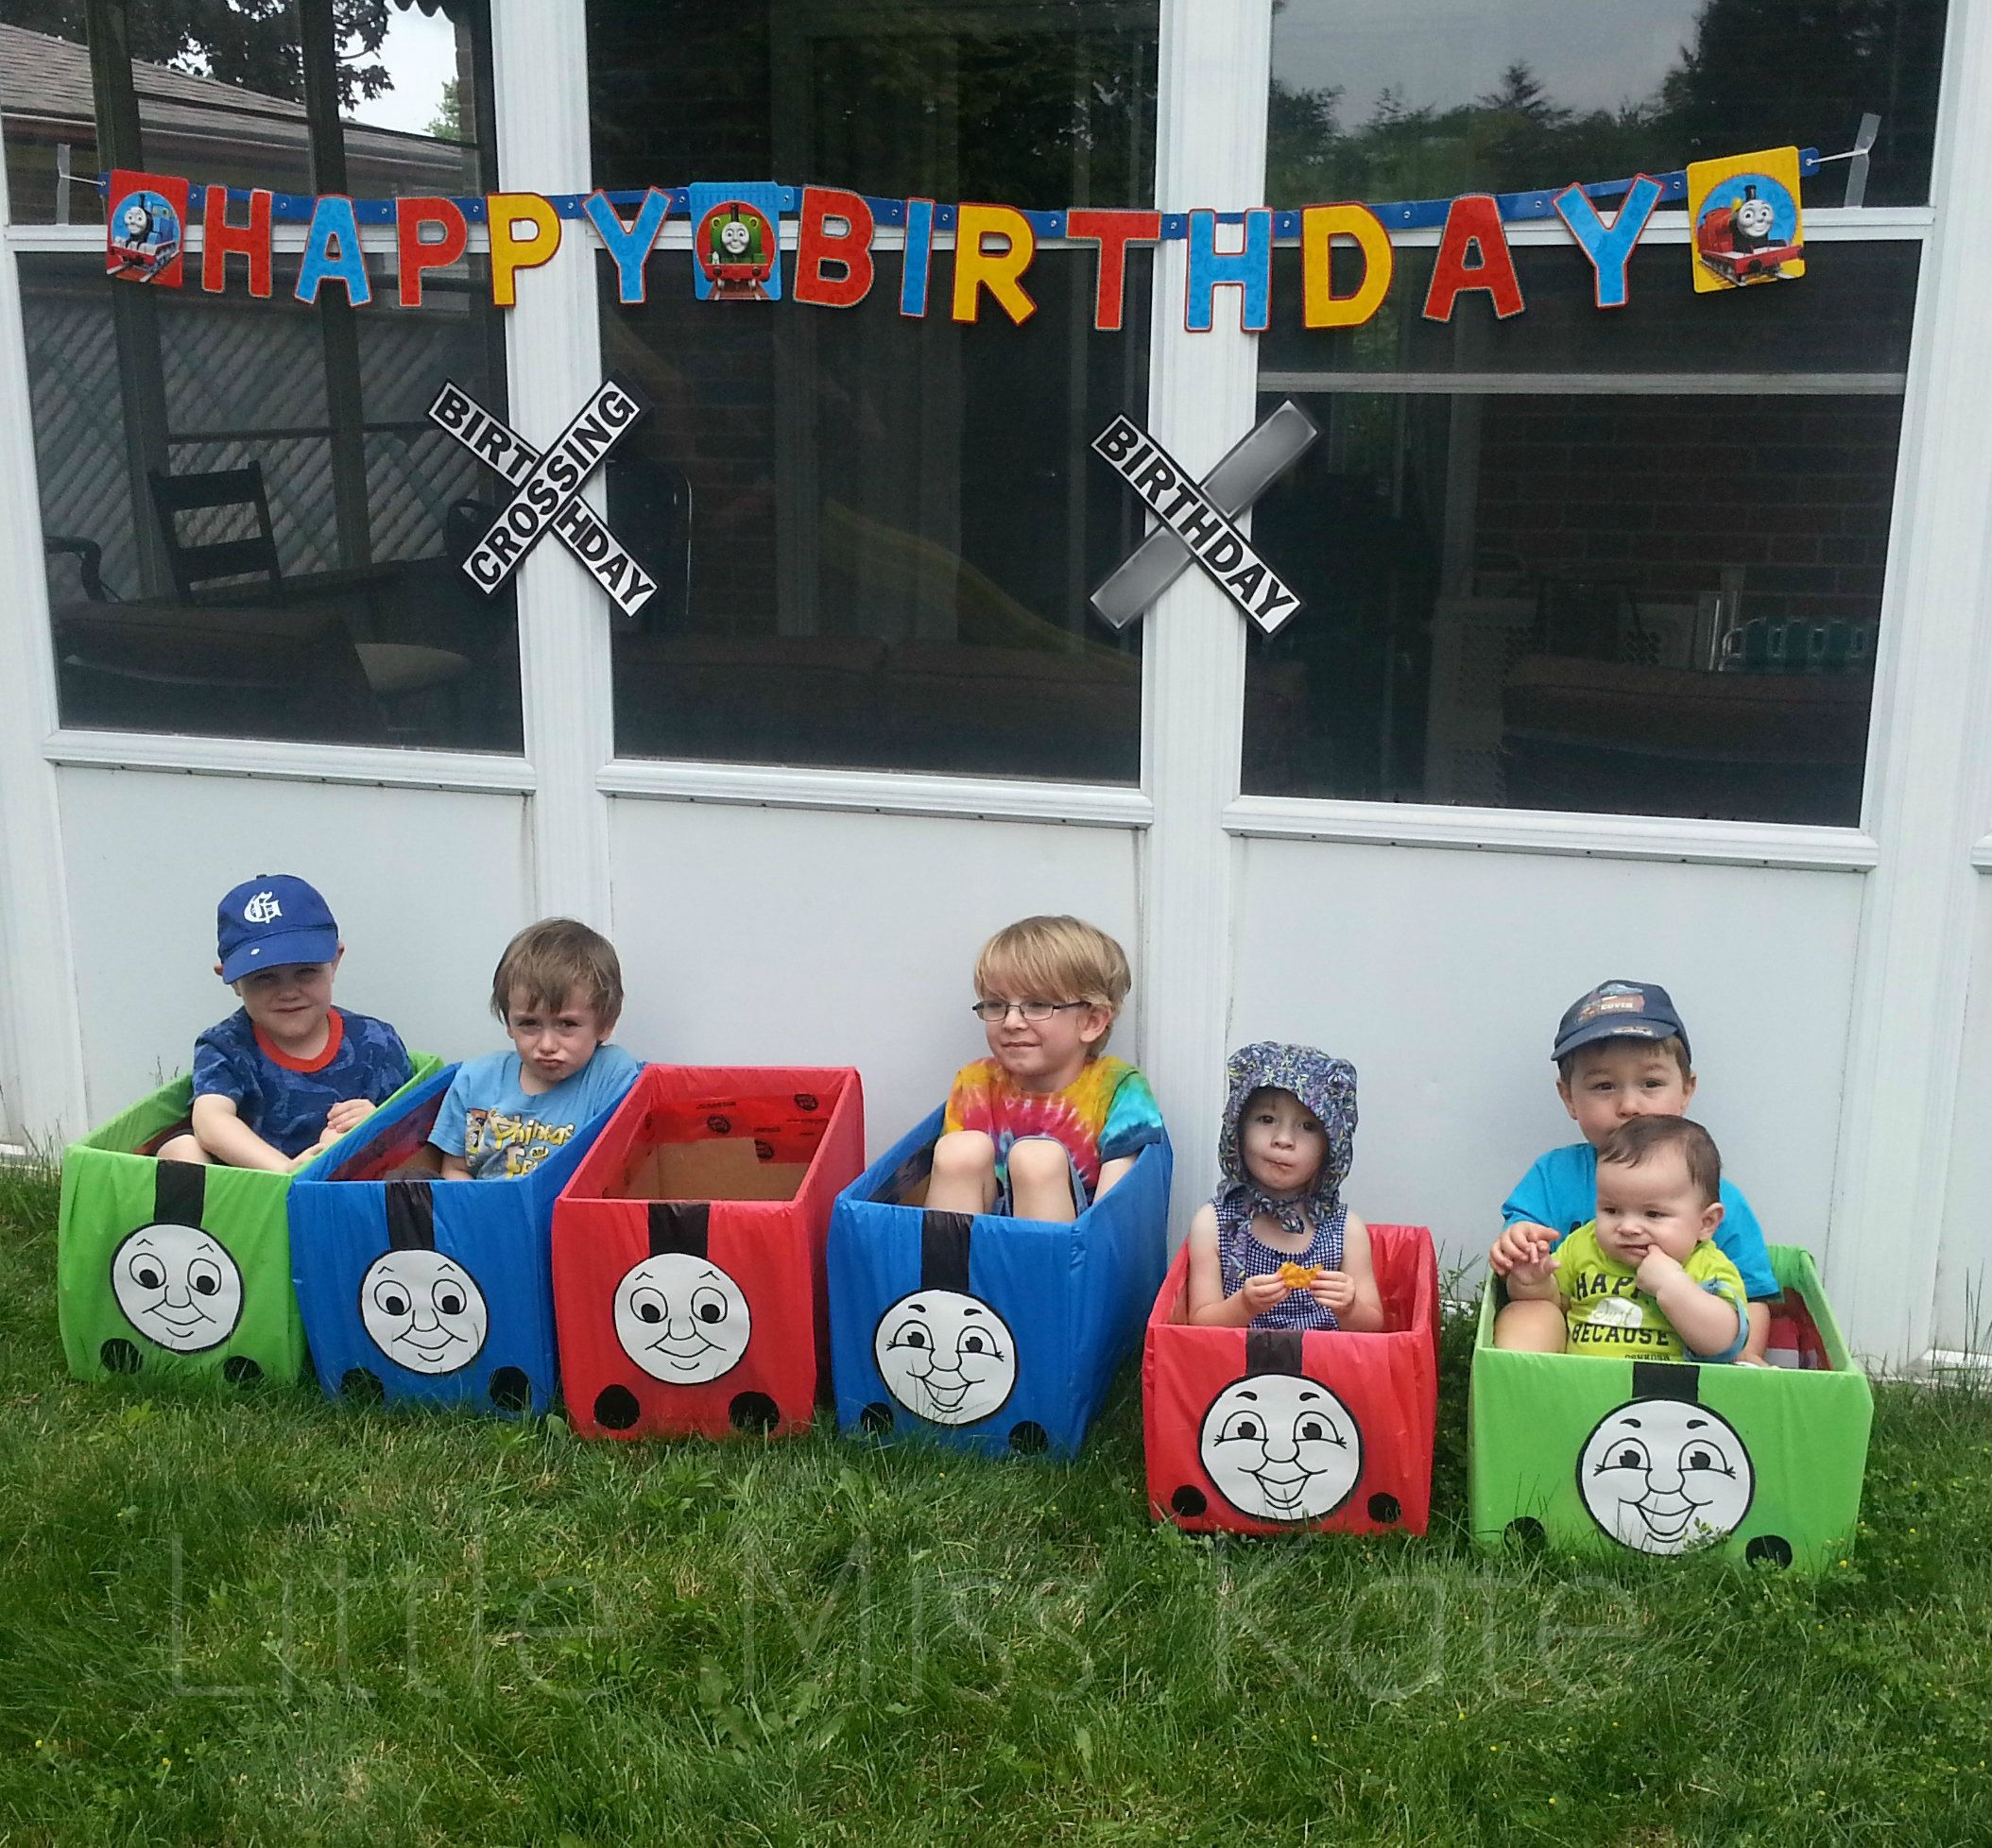 Thomas The Train Engine and Friends Ride In Toys Perfect for a